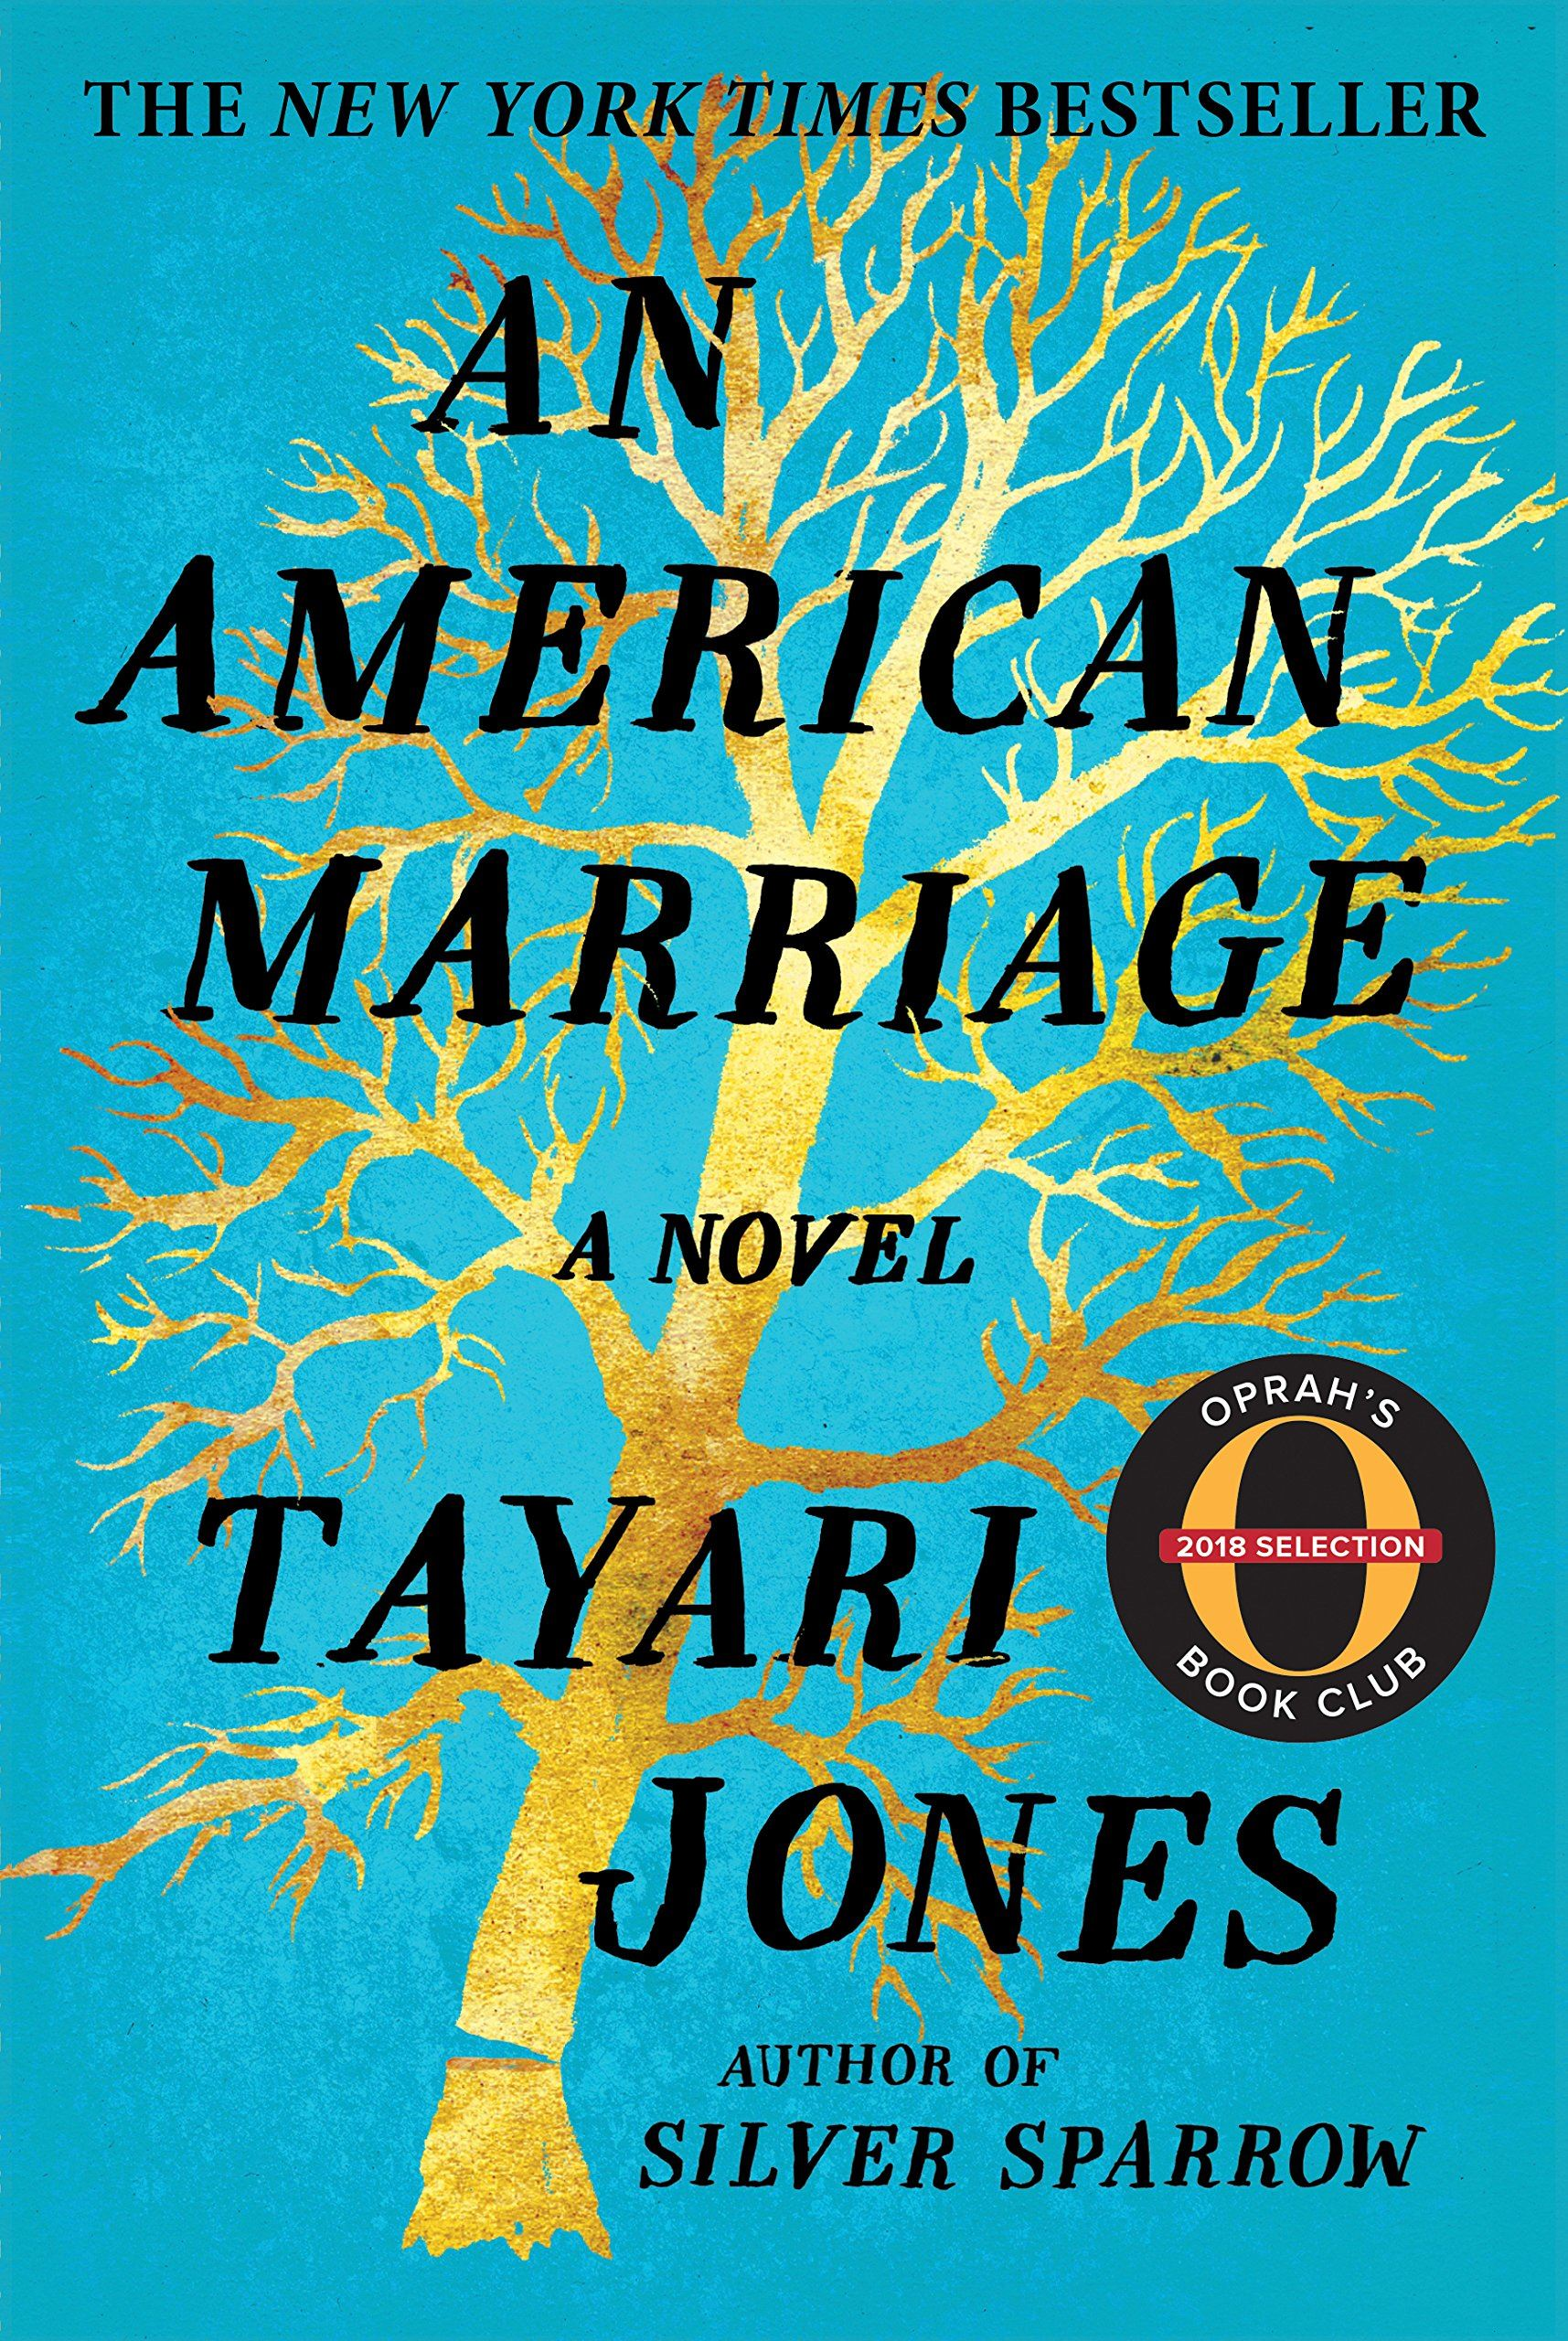 Image of book cover of An American Marriage by Tayari Jones with a turquoise background & gold tree